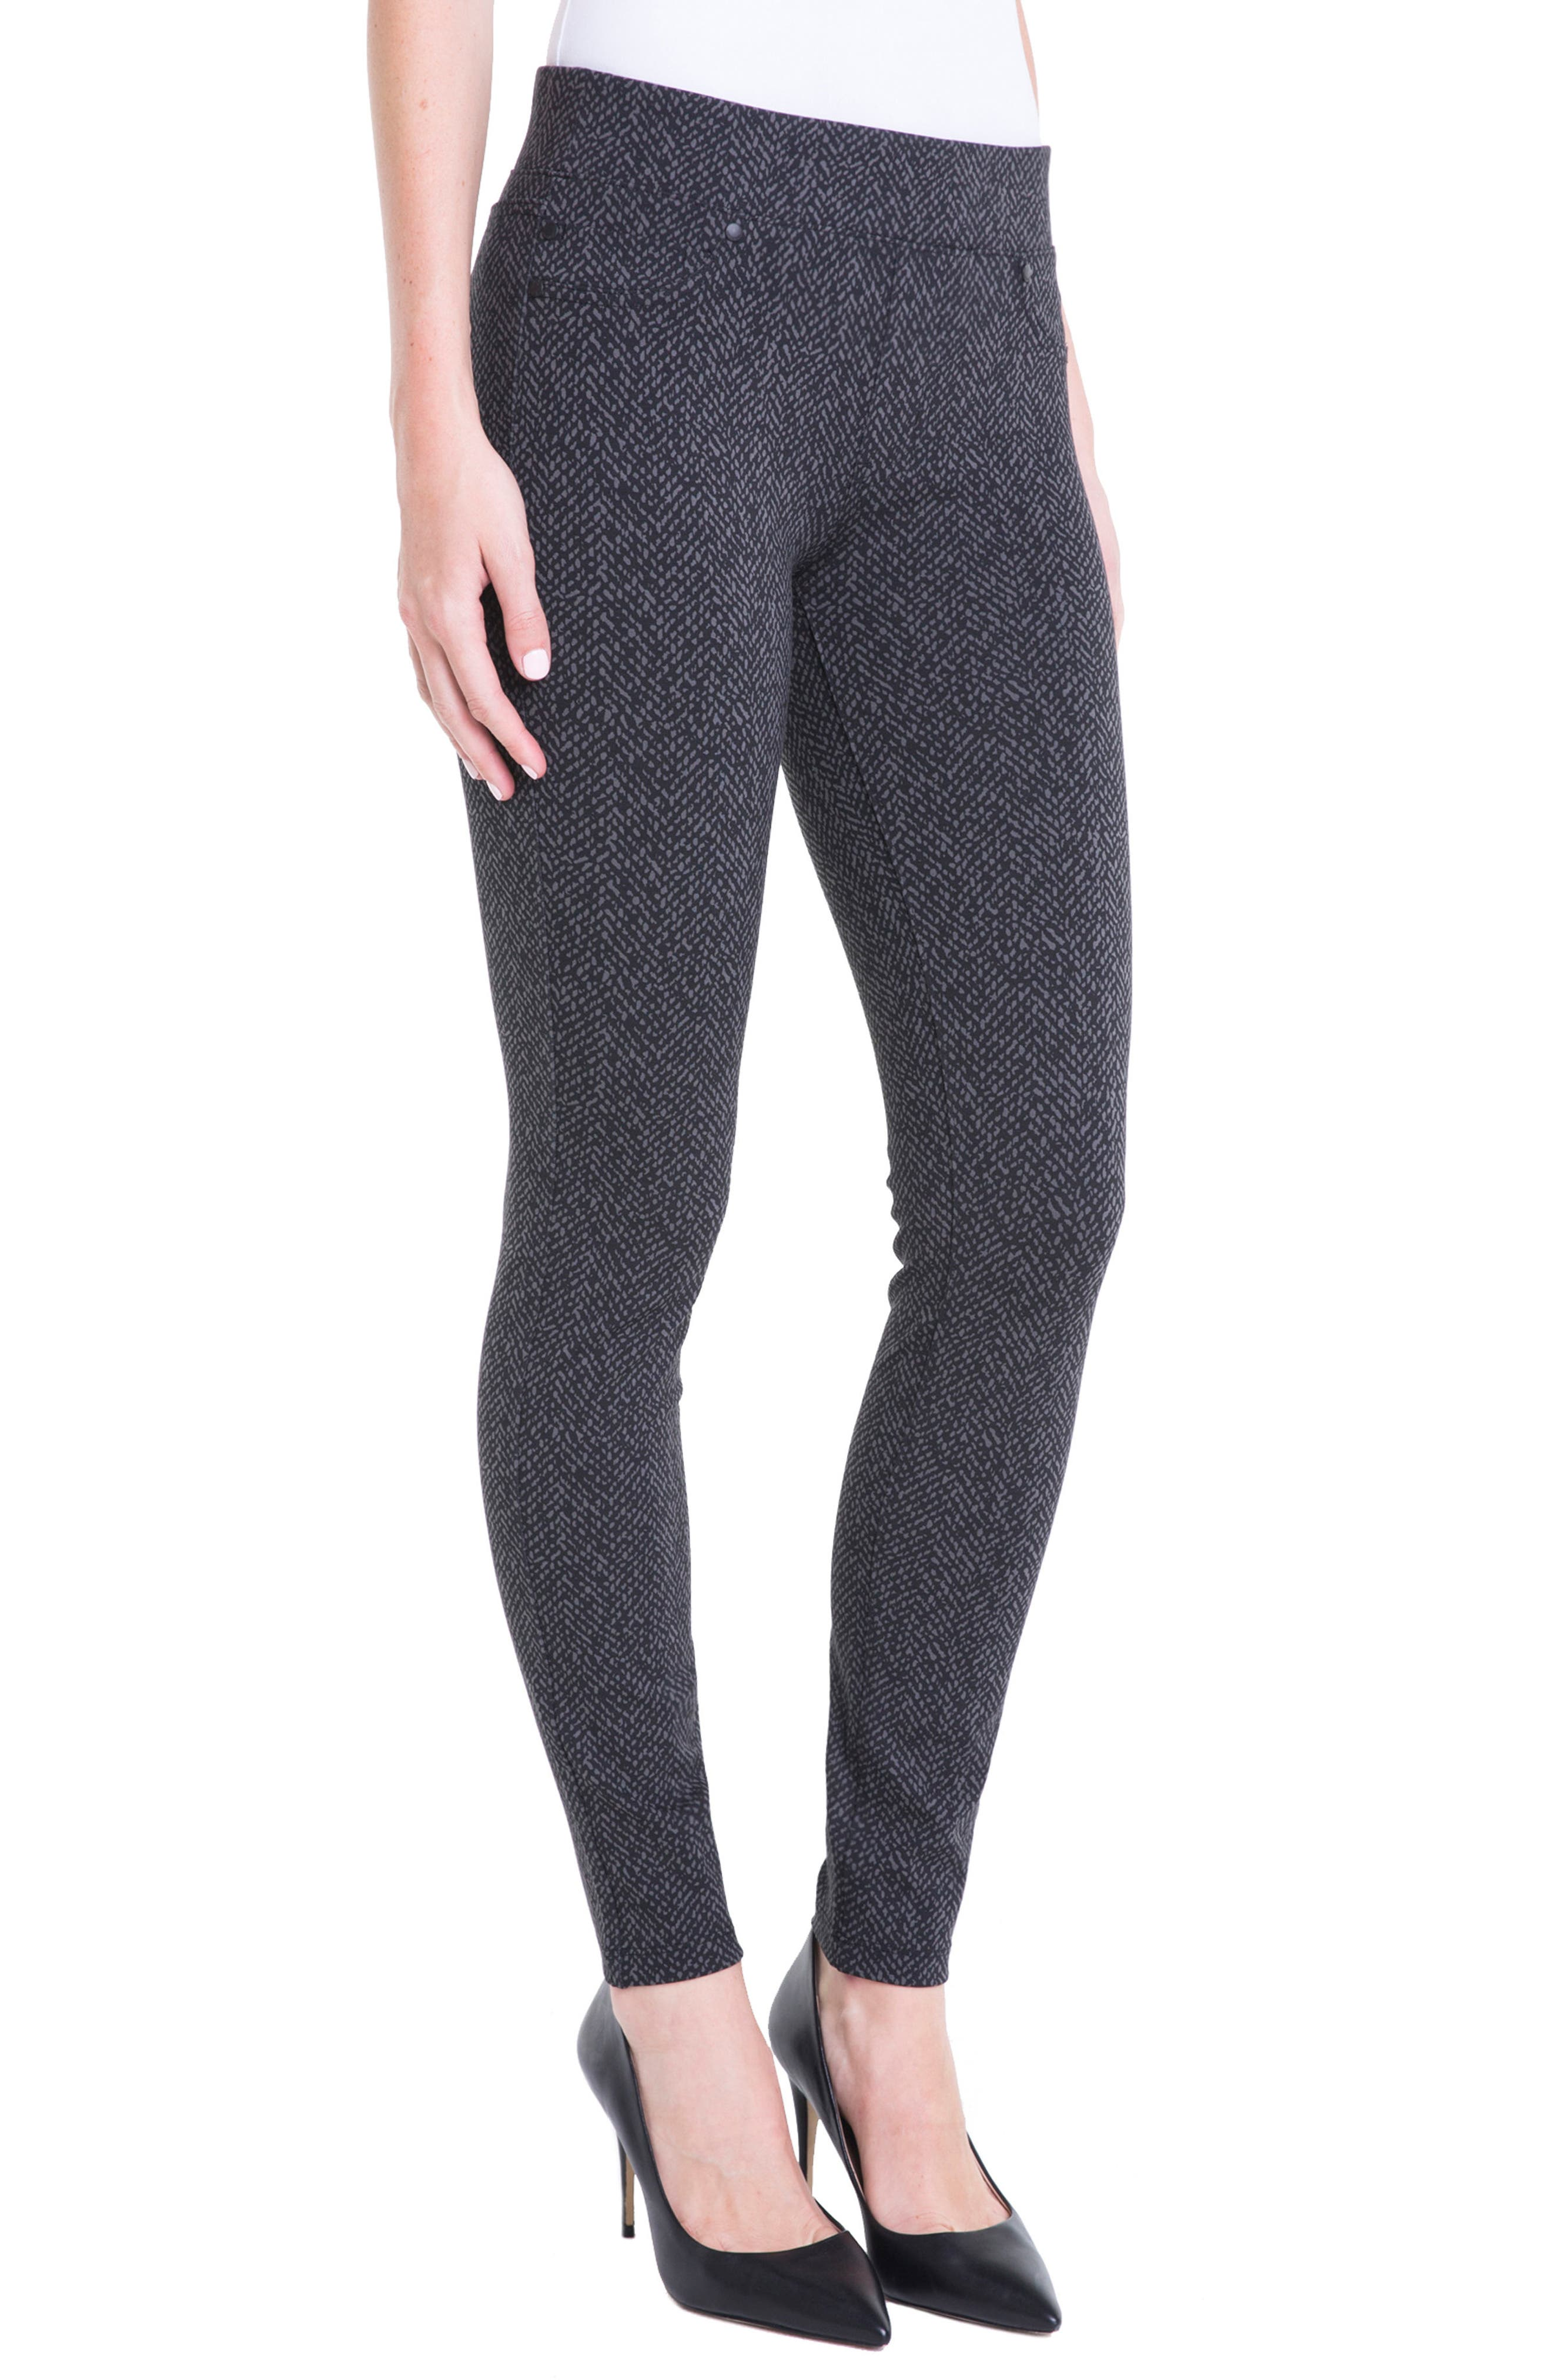 Liverpool Jeans Company Sienna Pull-On Leggings